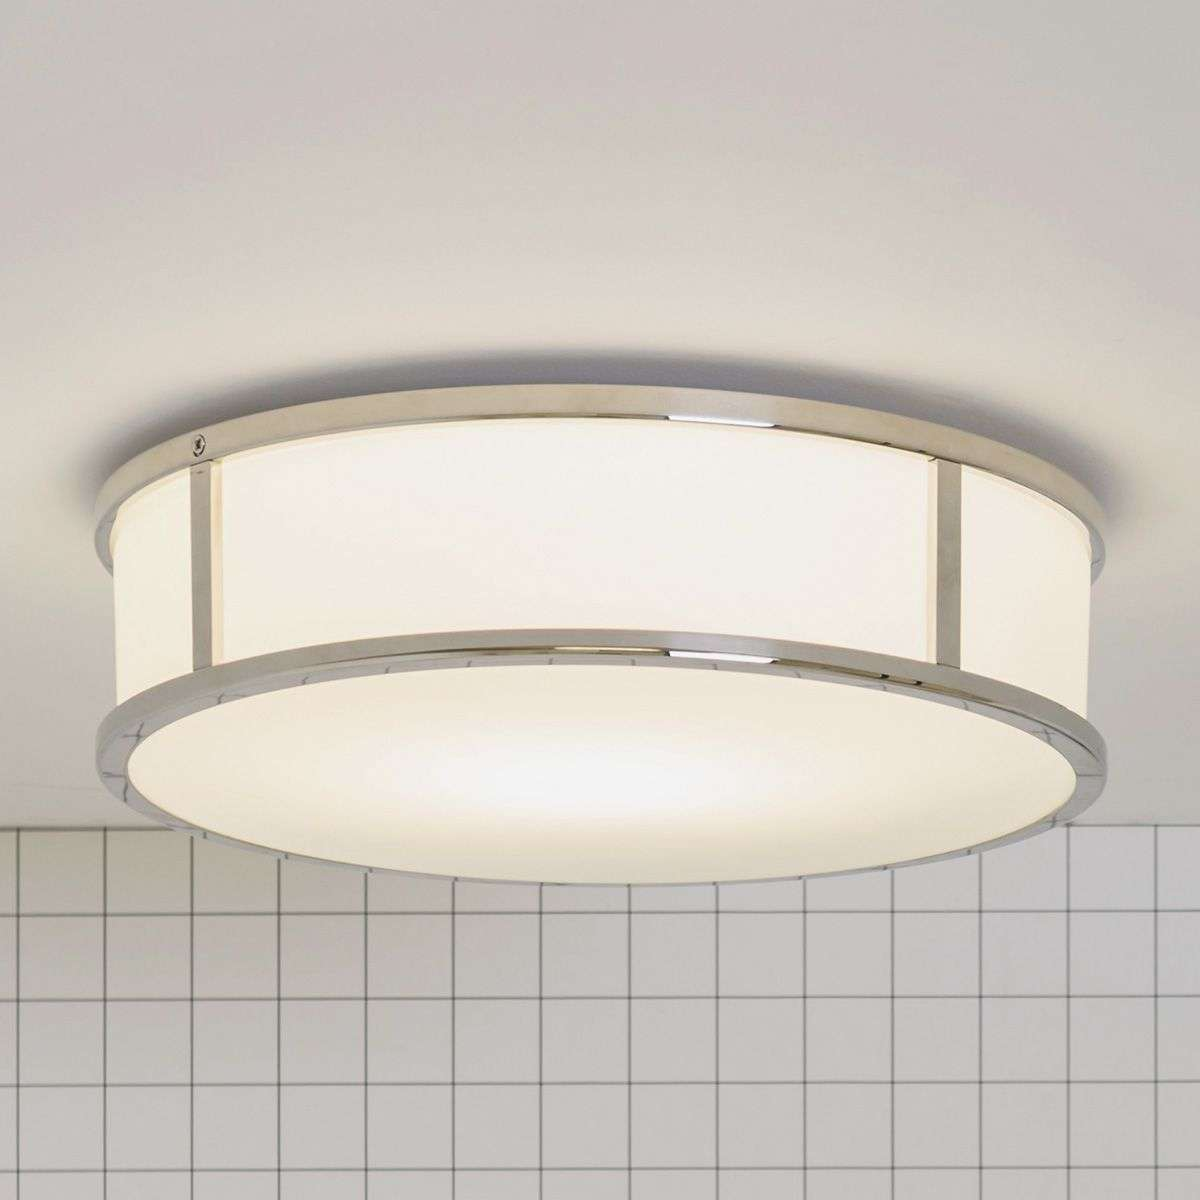 Mashiko Round 300 Bathroom Ceiling Light-1020466-35